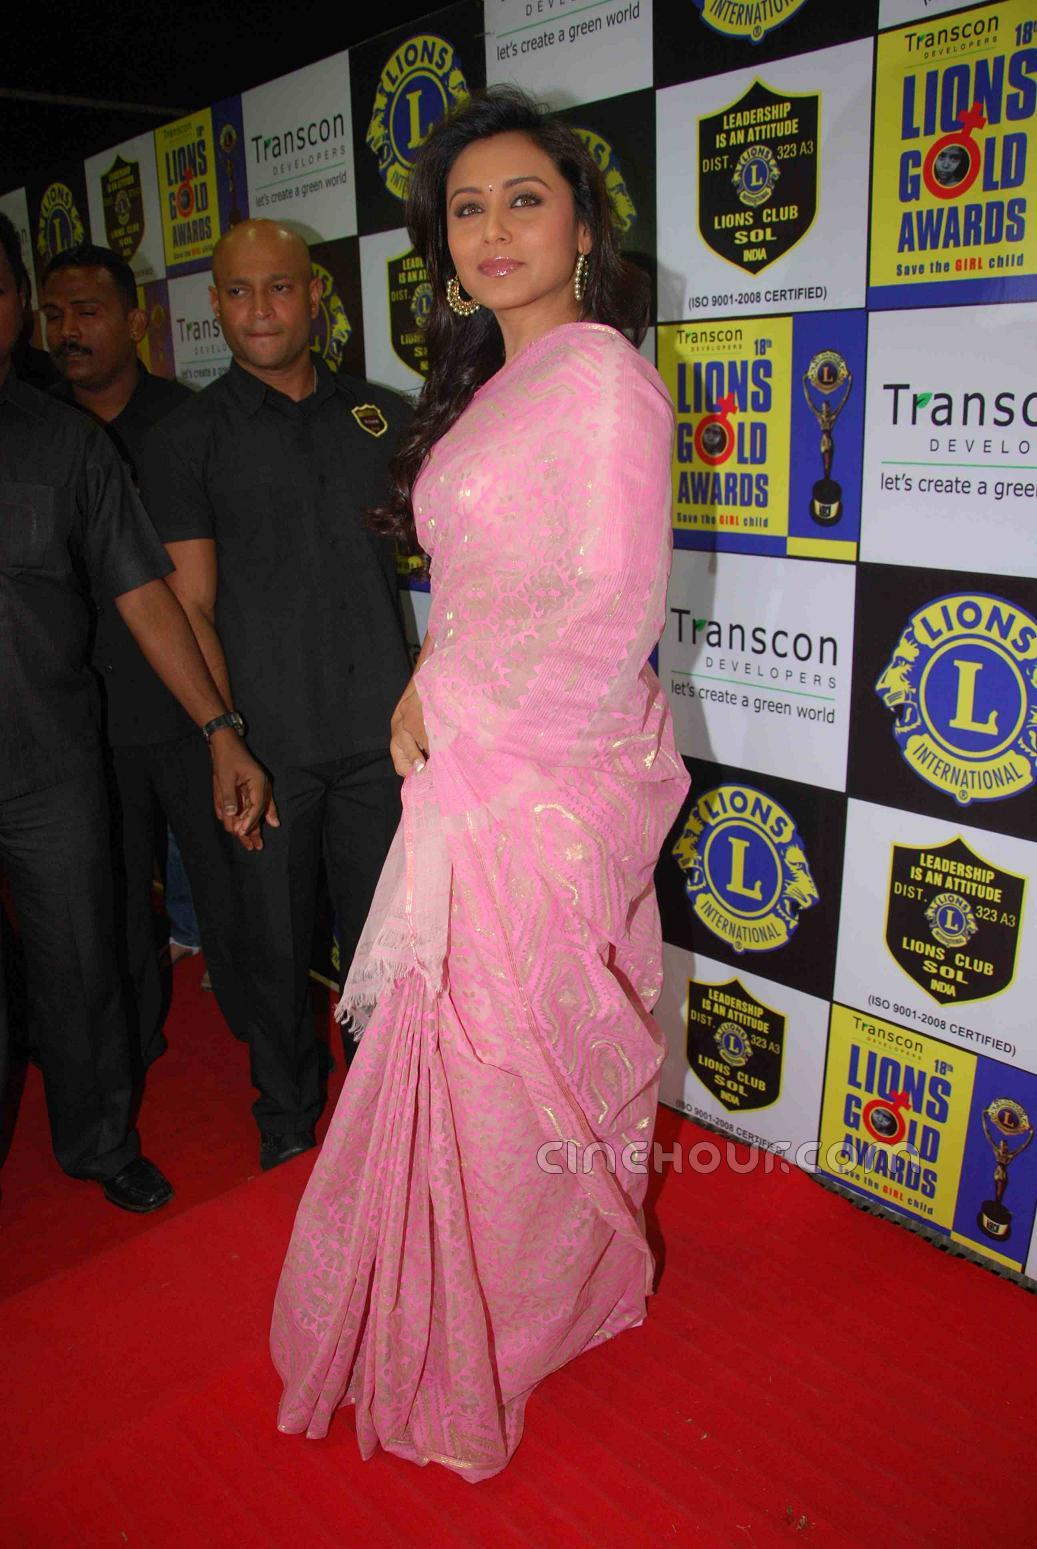 Lions Gold Awards1 - Lions Gold Awards, Rani Mukherjee, Chirag Paswan, Poonam Pandey and others